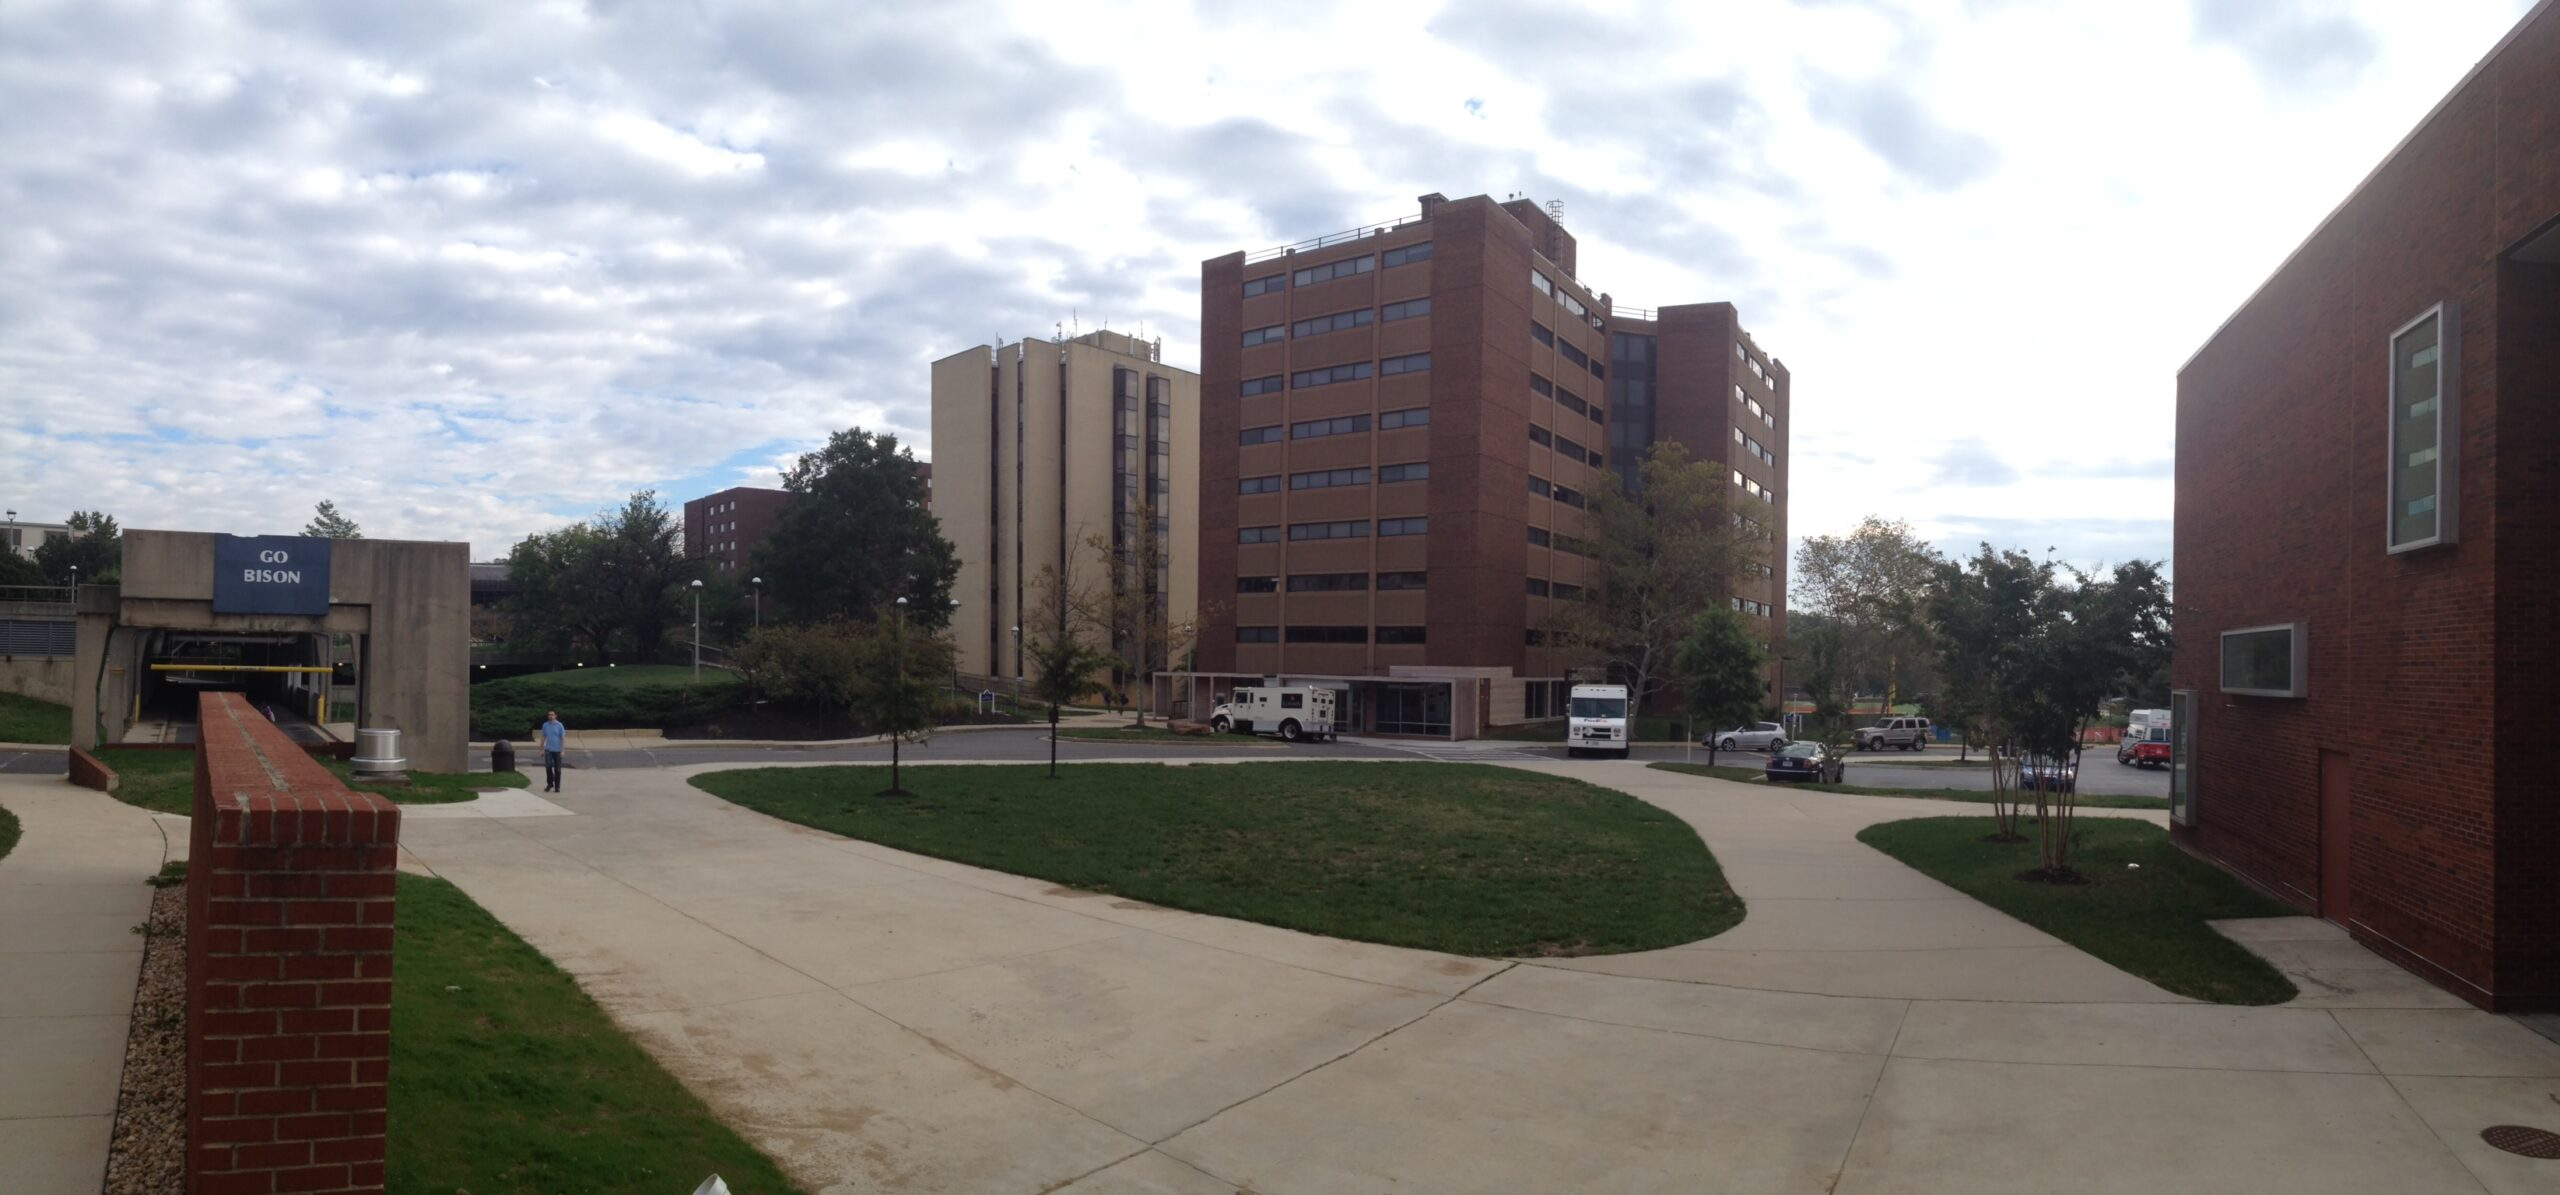 Panoramic View of Benson, Clerc, and Carlin